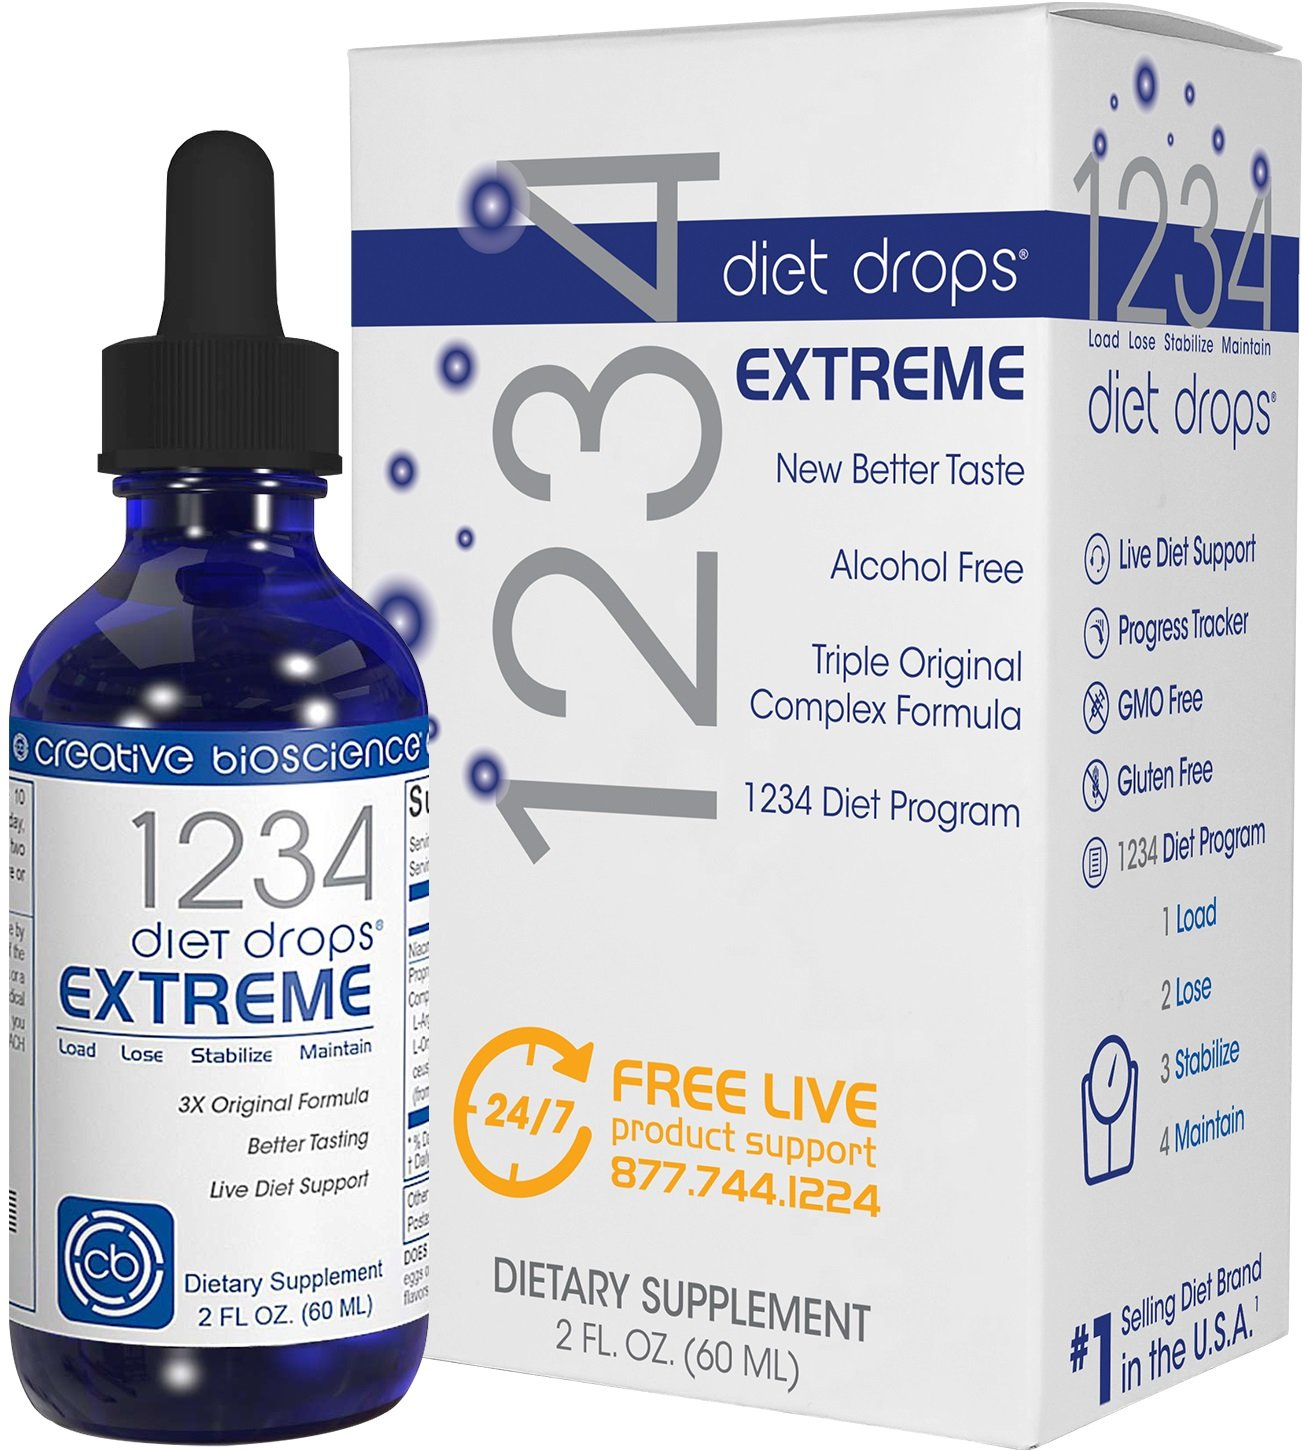 Drops for weight loss: product rating according to customer reviews 38